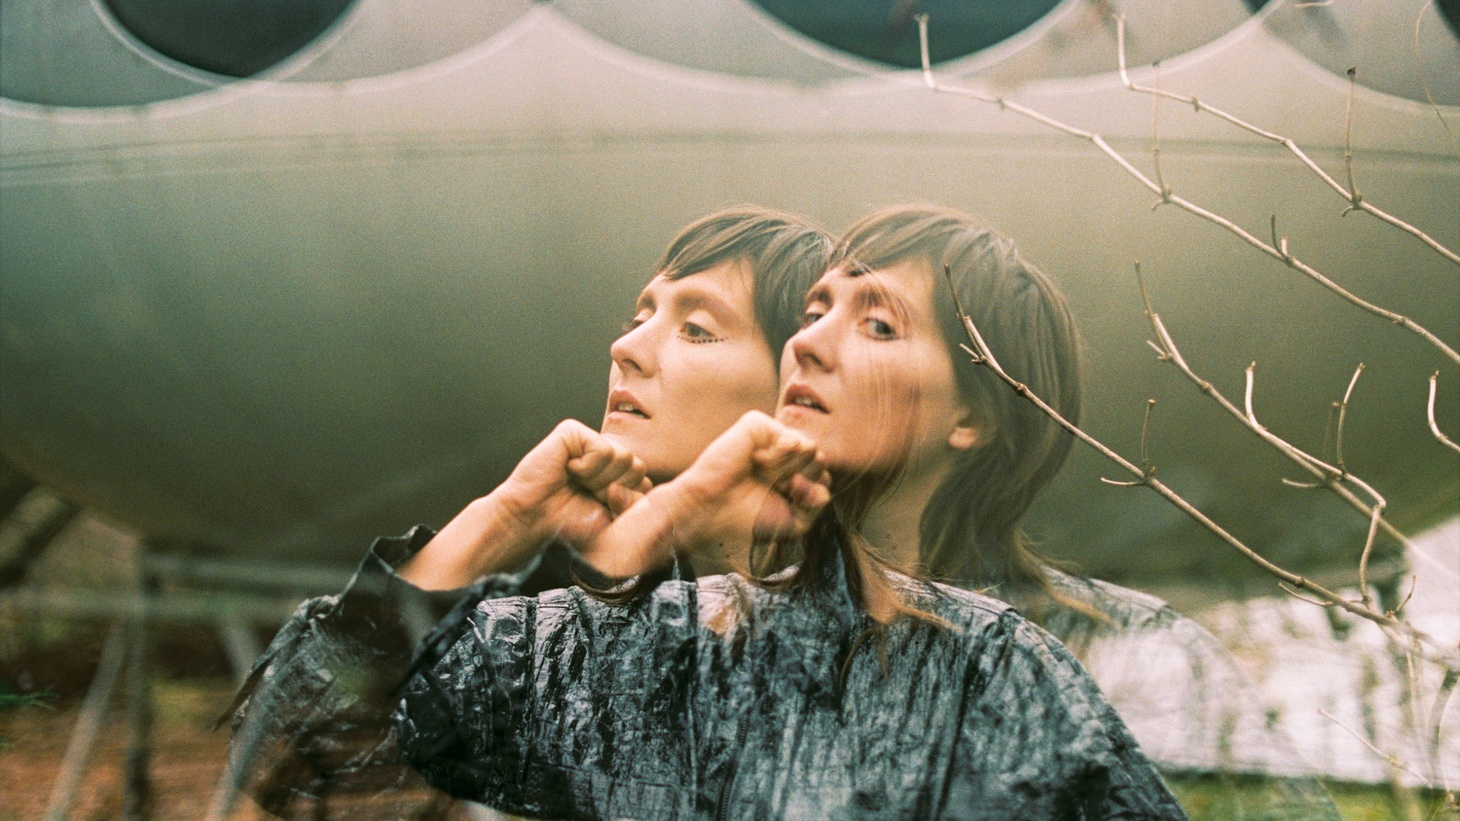 Welsh-born, LA-based songstress Cate Le Bon has a distinctive indie-rock sound that threads all the way through her forthcoming fourth album, Crab Day.